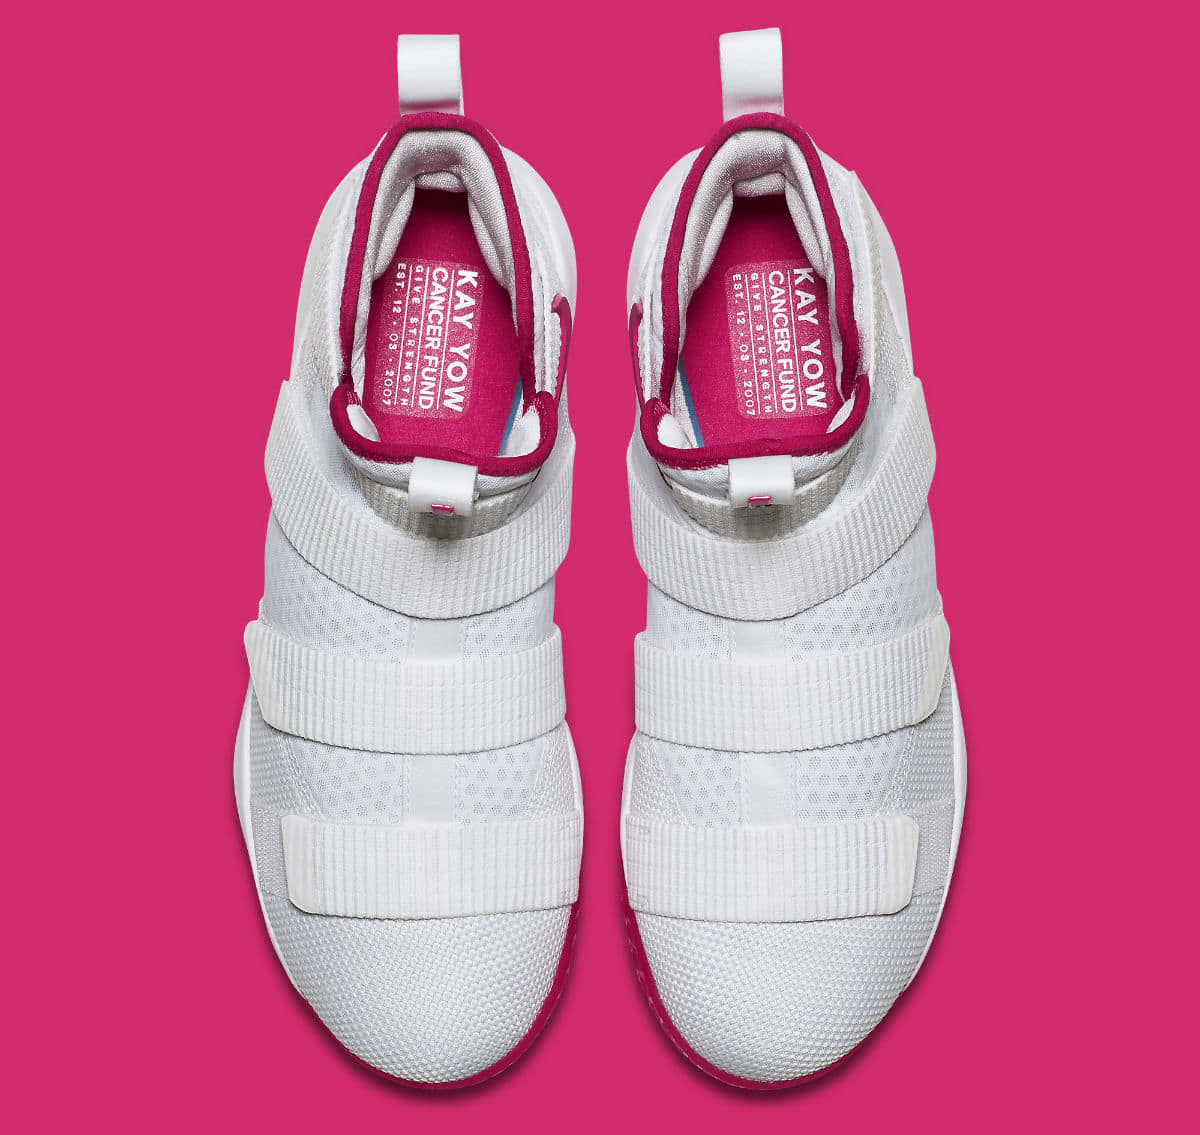 nike-lebron-soldier-11-kay-yow-breast-cancer-awareness-release-date-897645-102-5